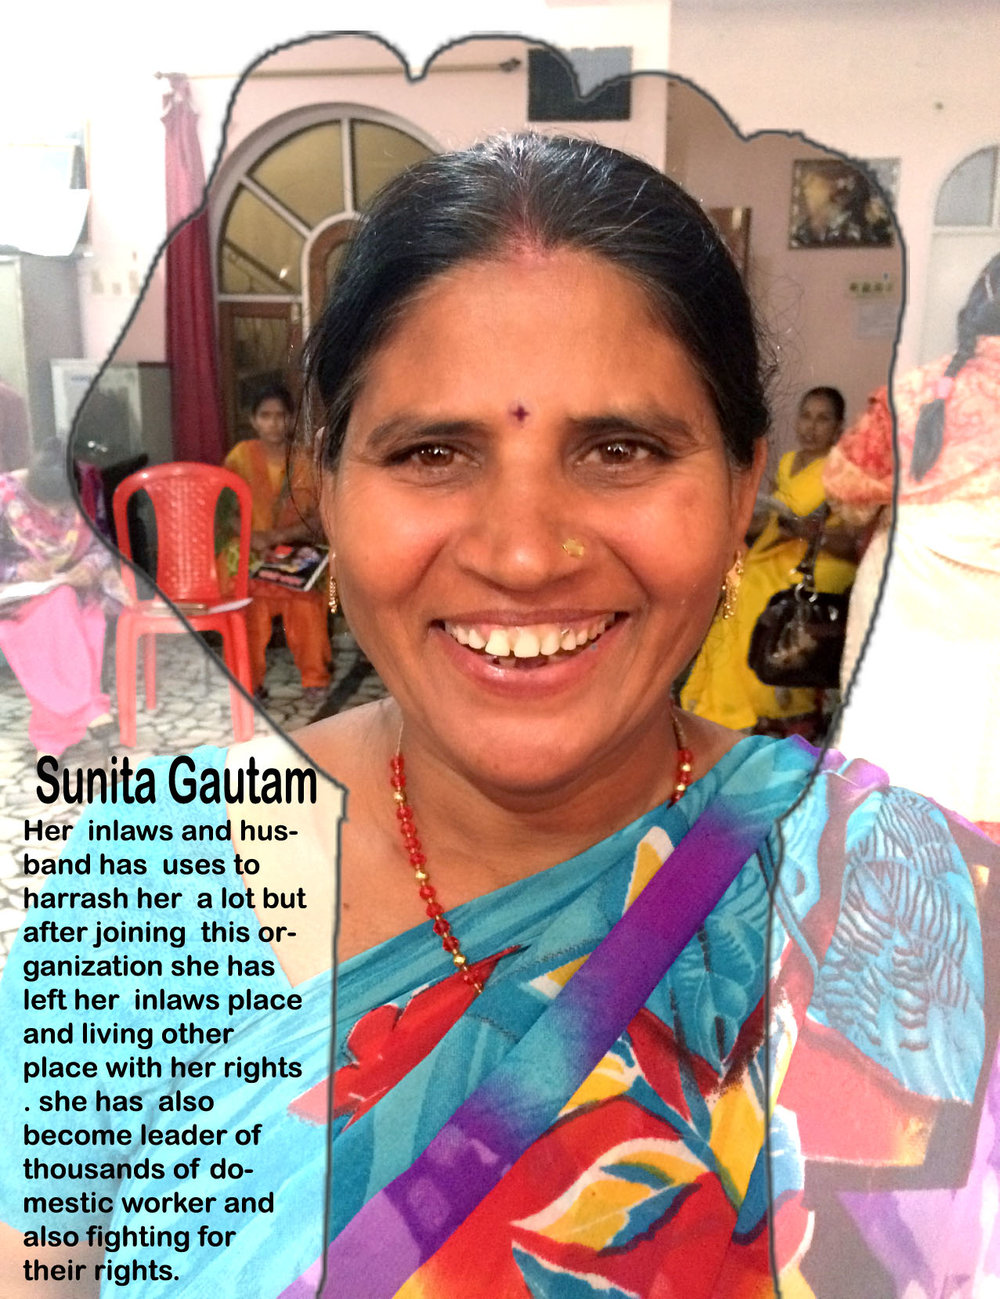 Sunita Gautam women human right defender--.jpg